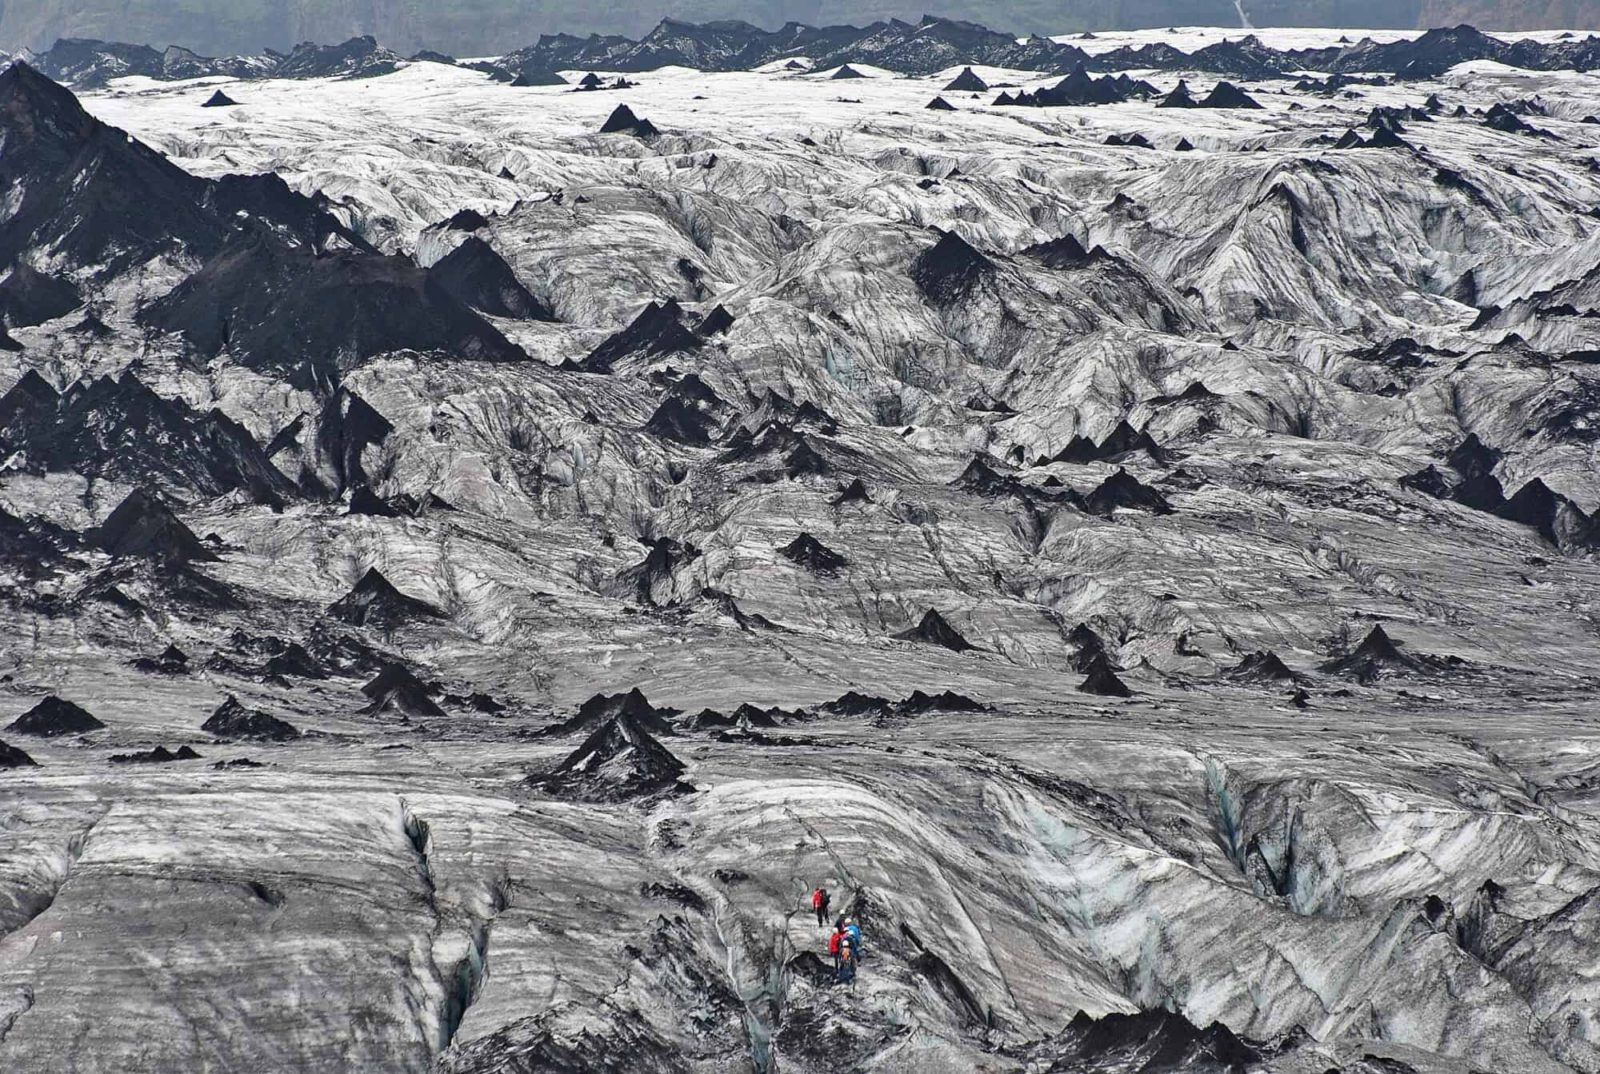 My most favourite shot! Hikers climbing the glacier peaks of Sólheimajökull in South Iceland. By the eruption of the Eyjafjalla in 2010 the glacier is contaminated with ash that the ice shades in all kinds of varies grey and even black colors.